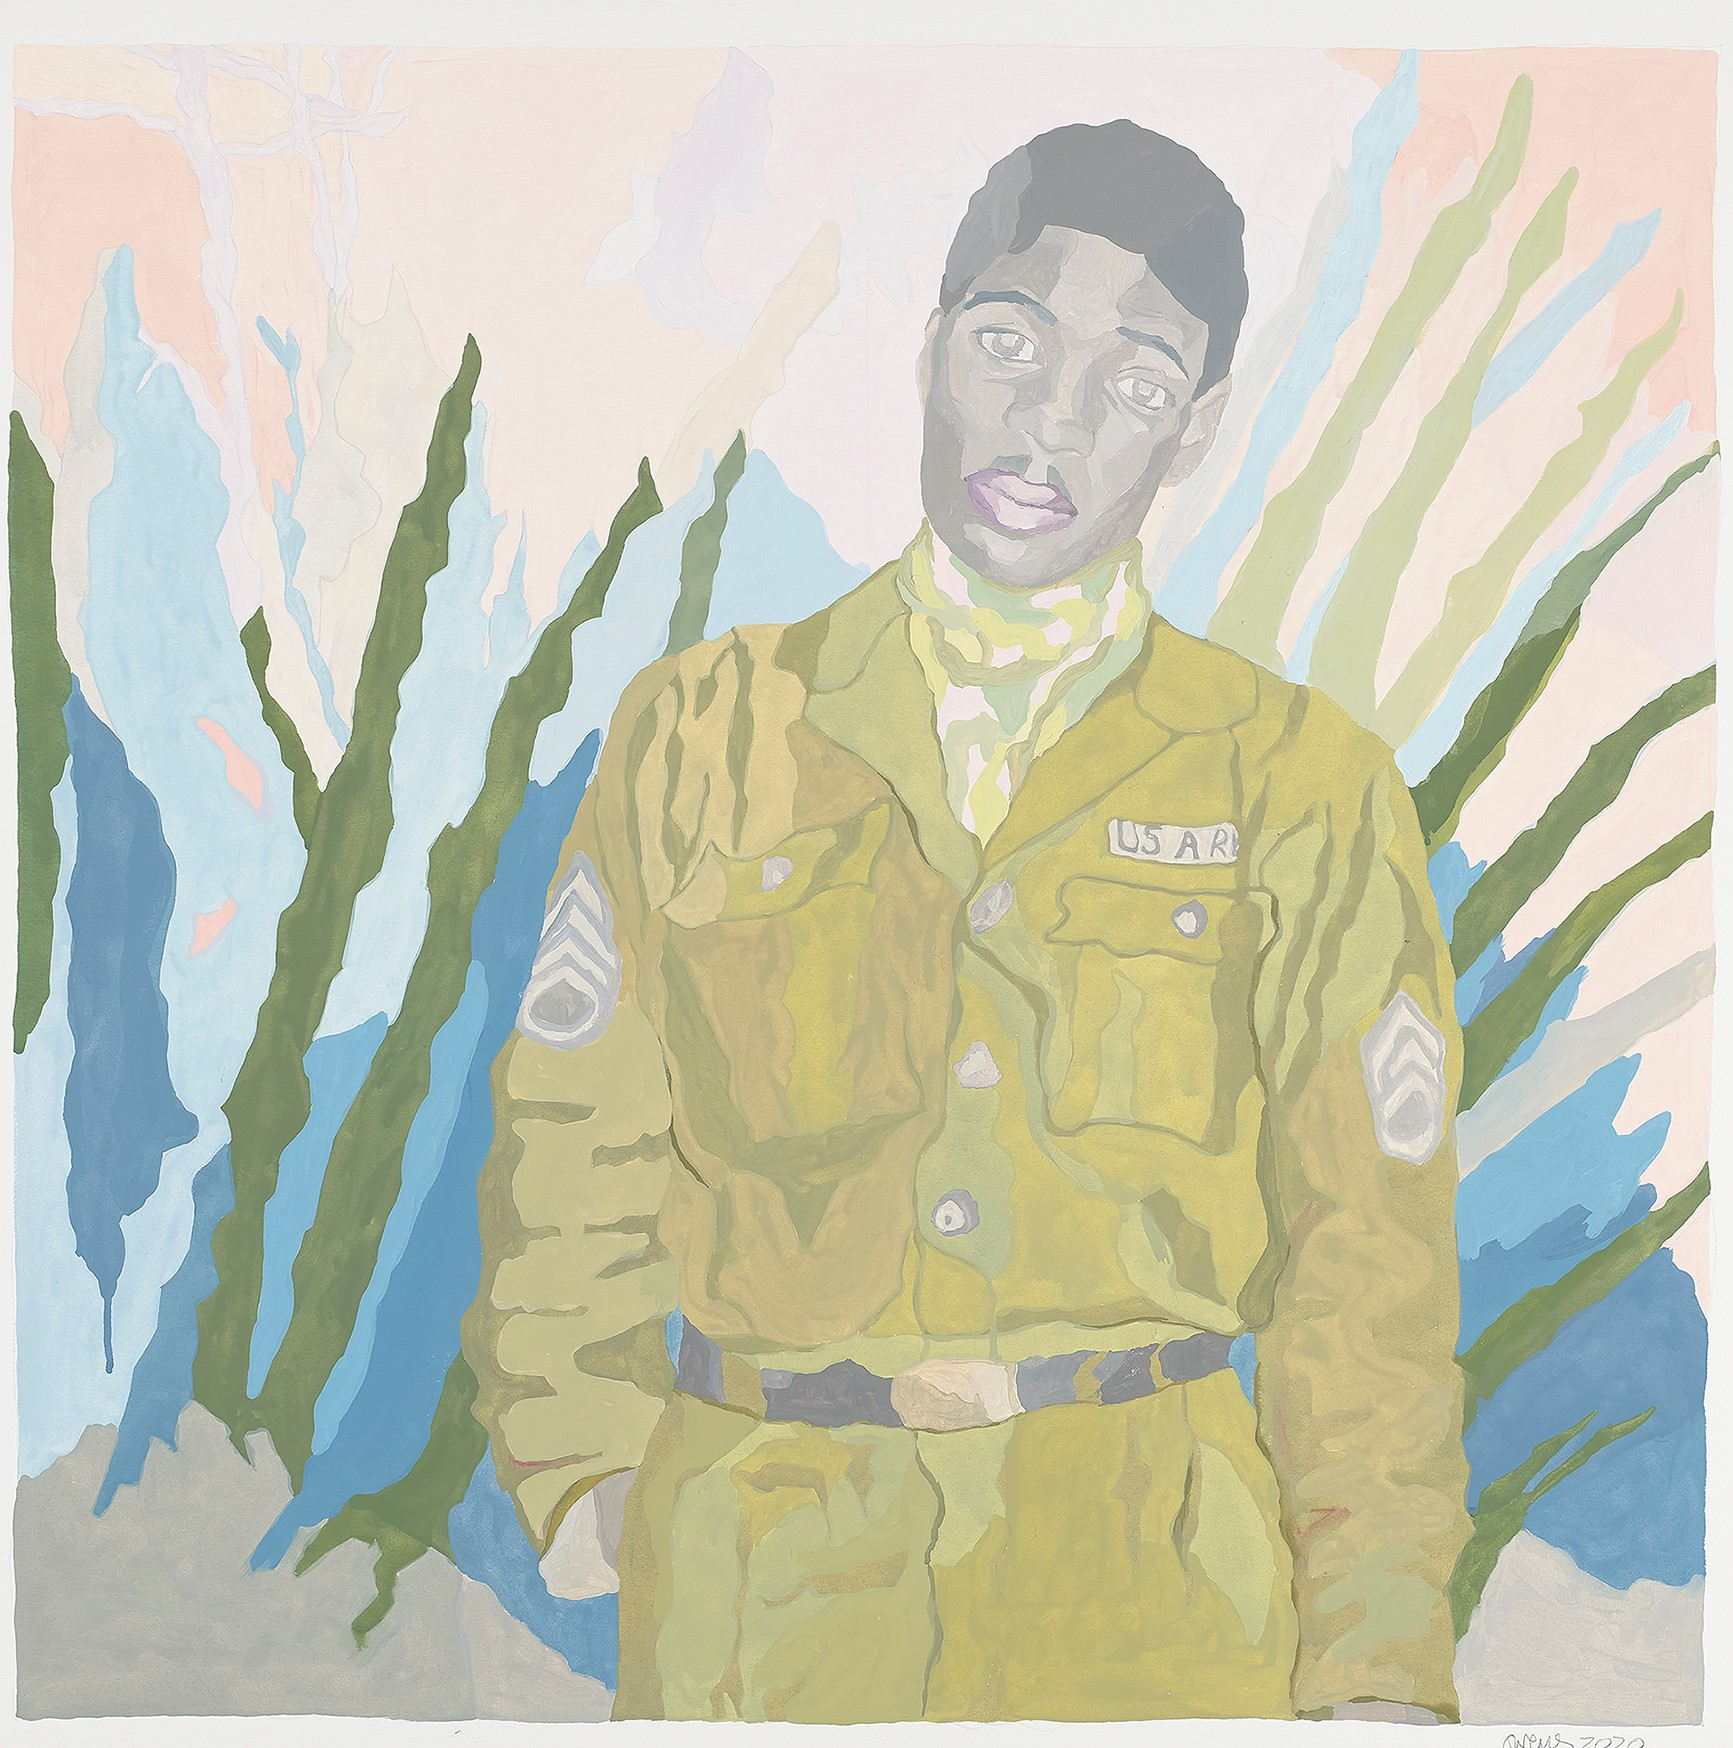 A painting of a black man in a green military uniform standing in front of a scene of tropical greenery.